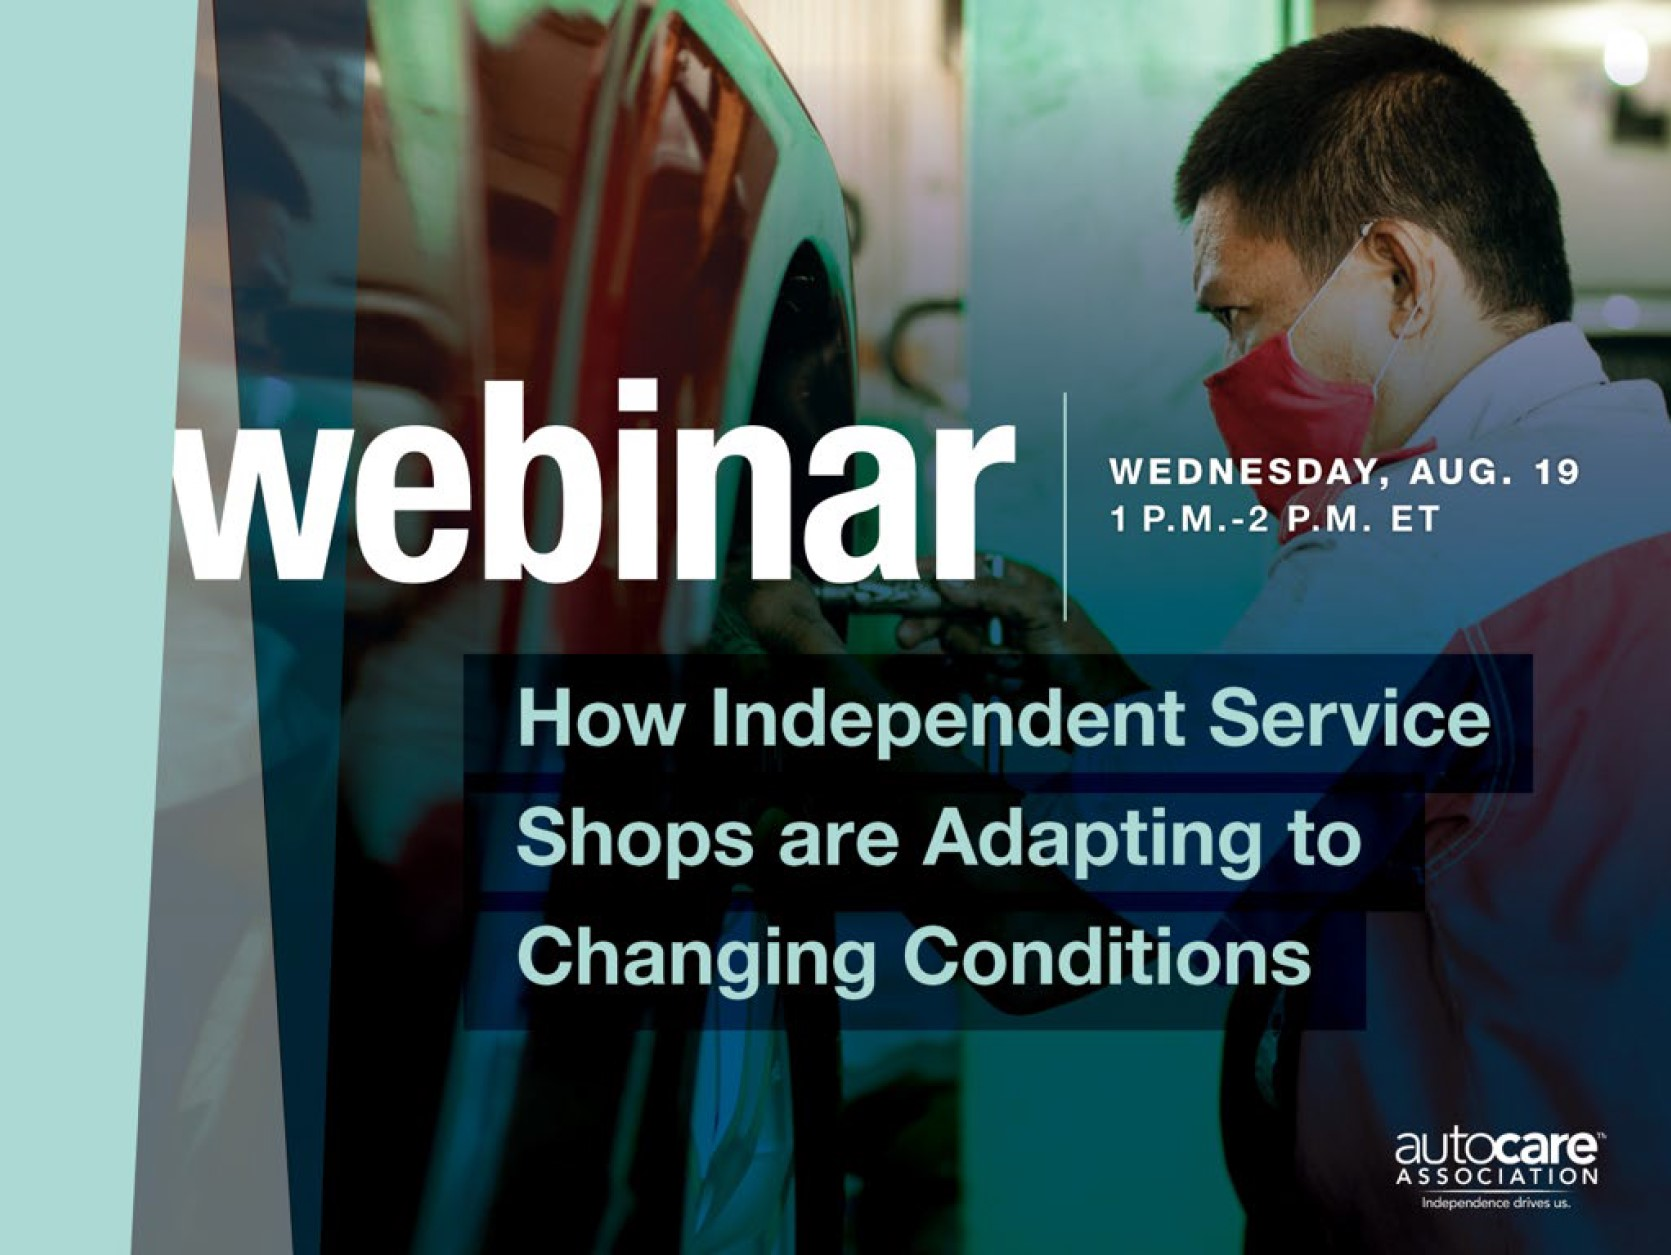 How Independent Service Shops are Adapting to Changing Conditions